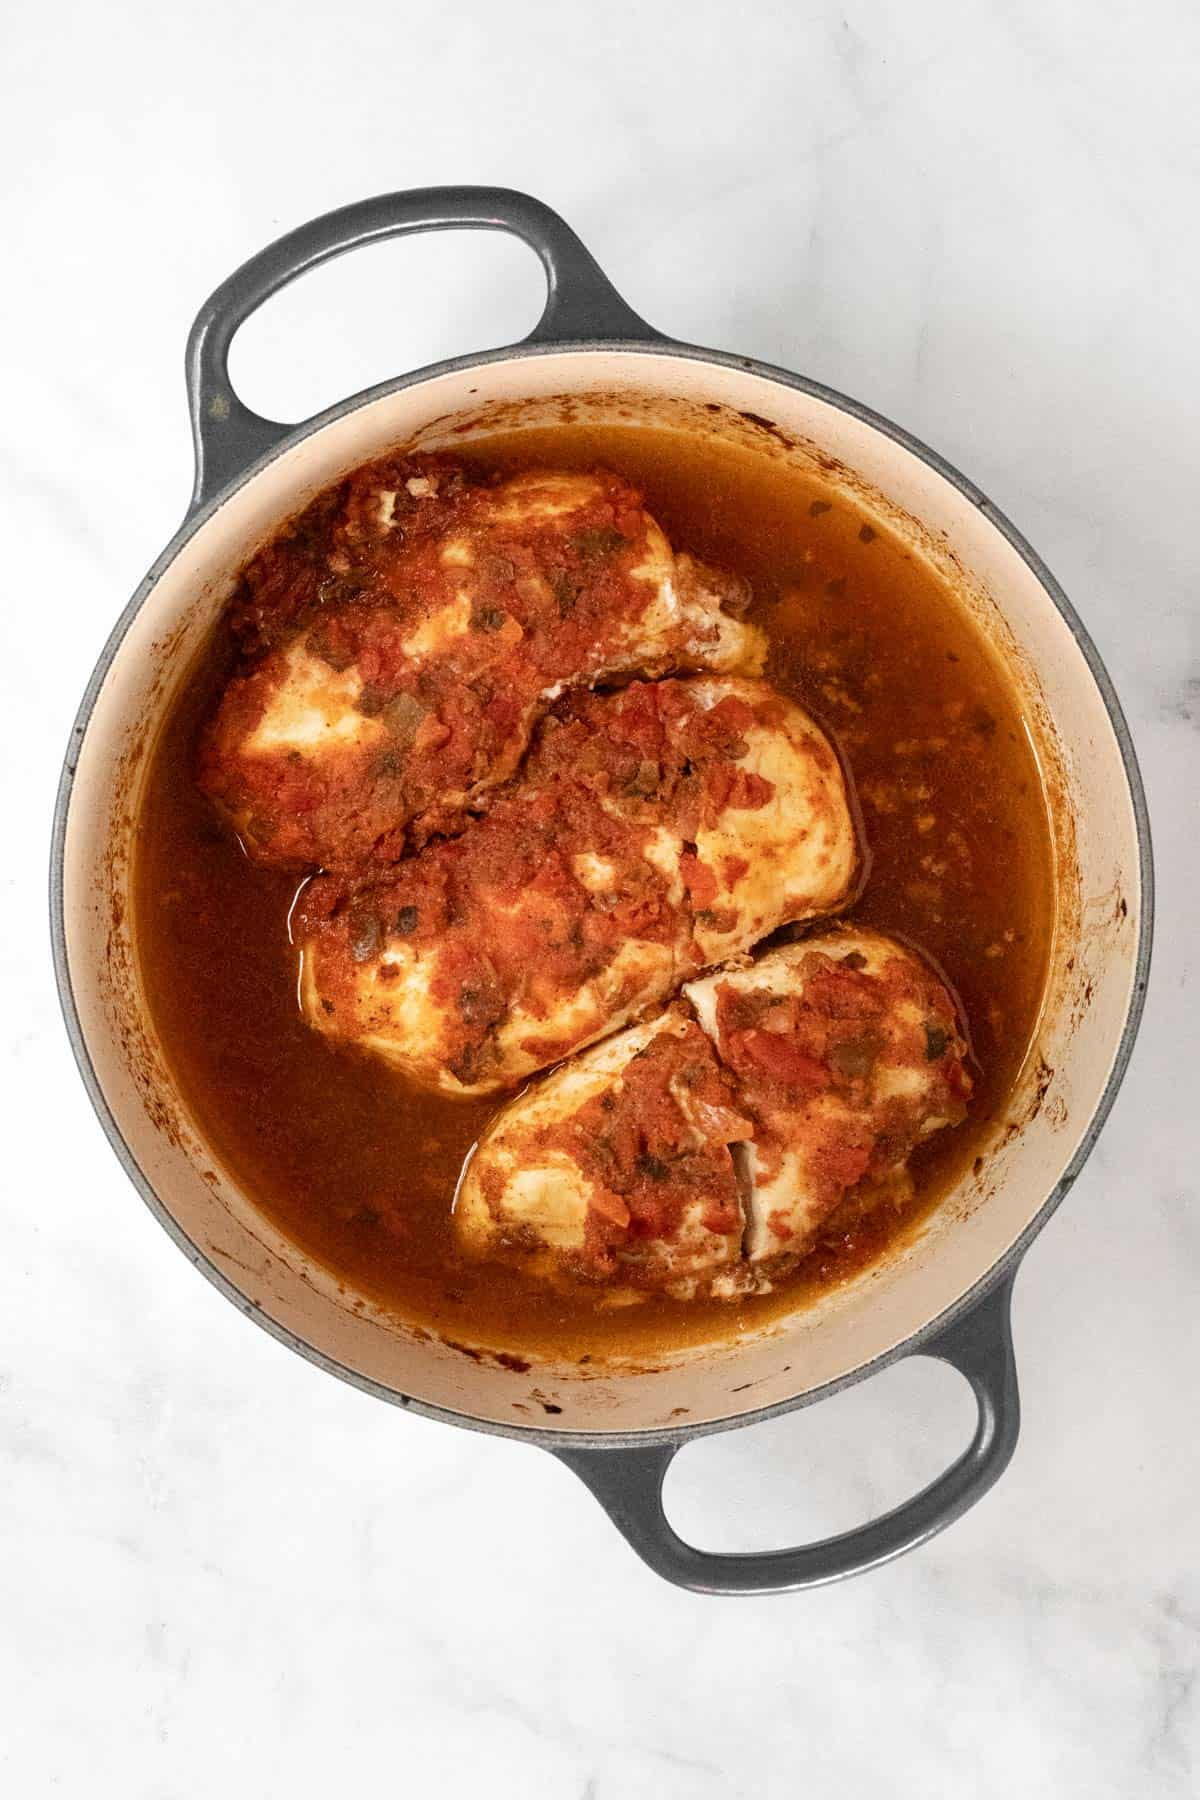 Cooked chicken breasts topped with salsa in a dutch oven.